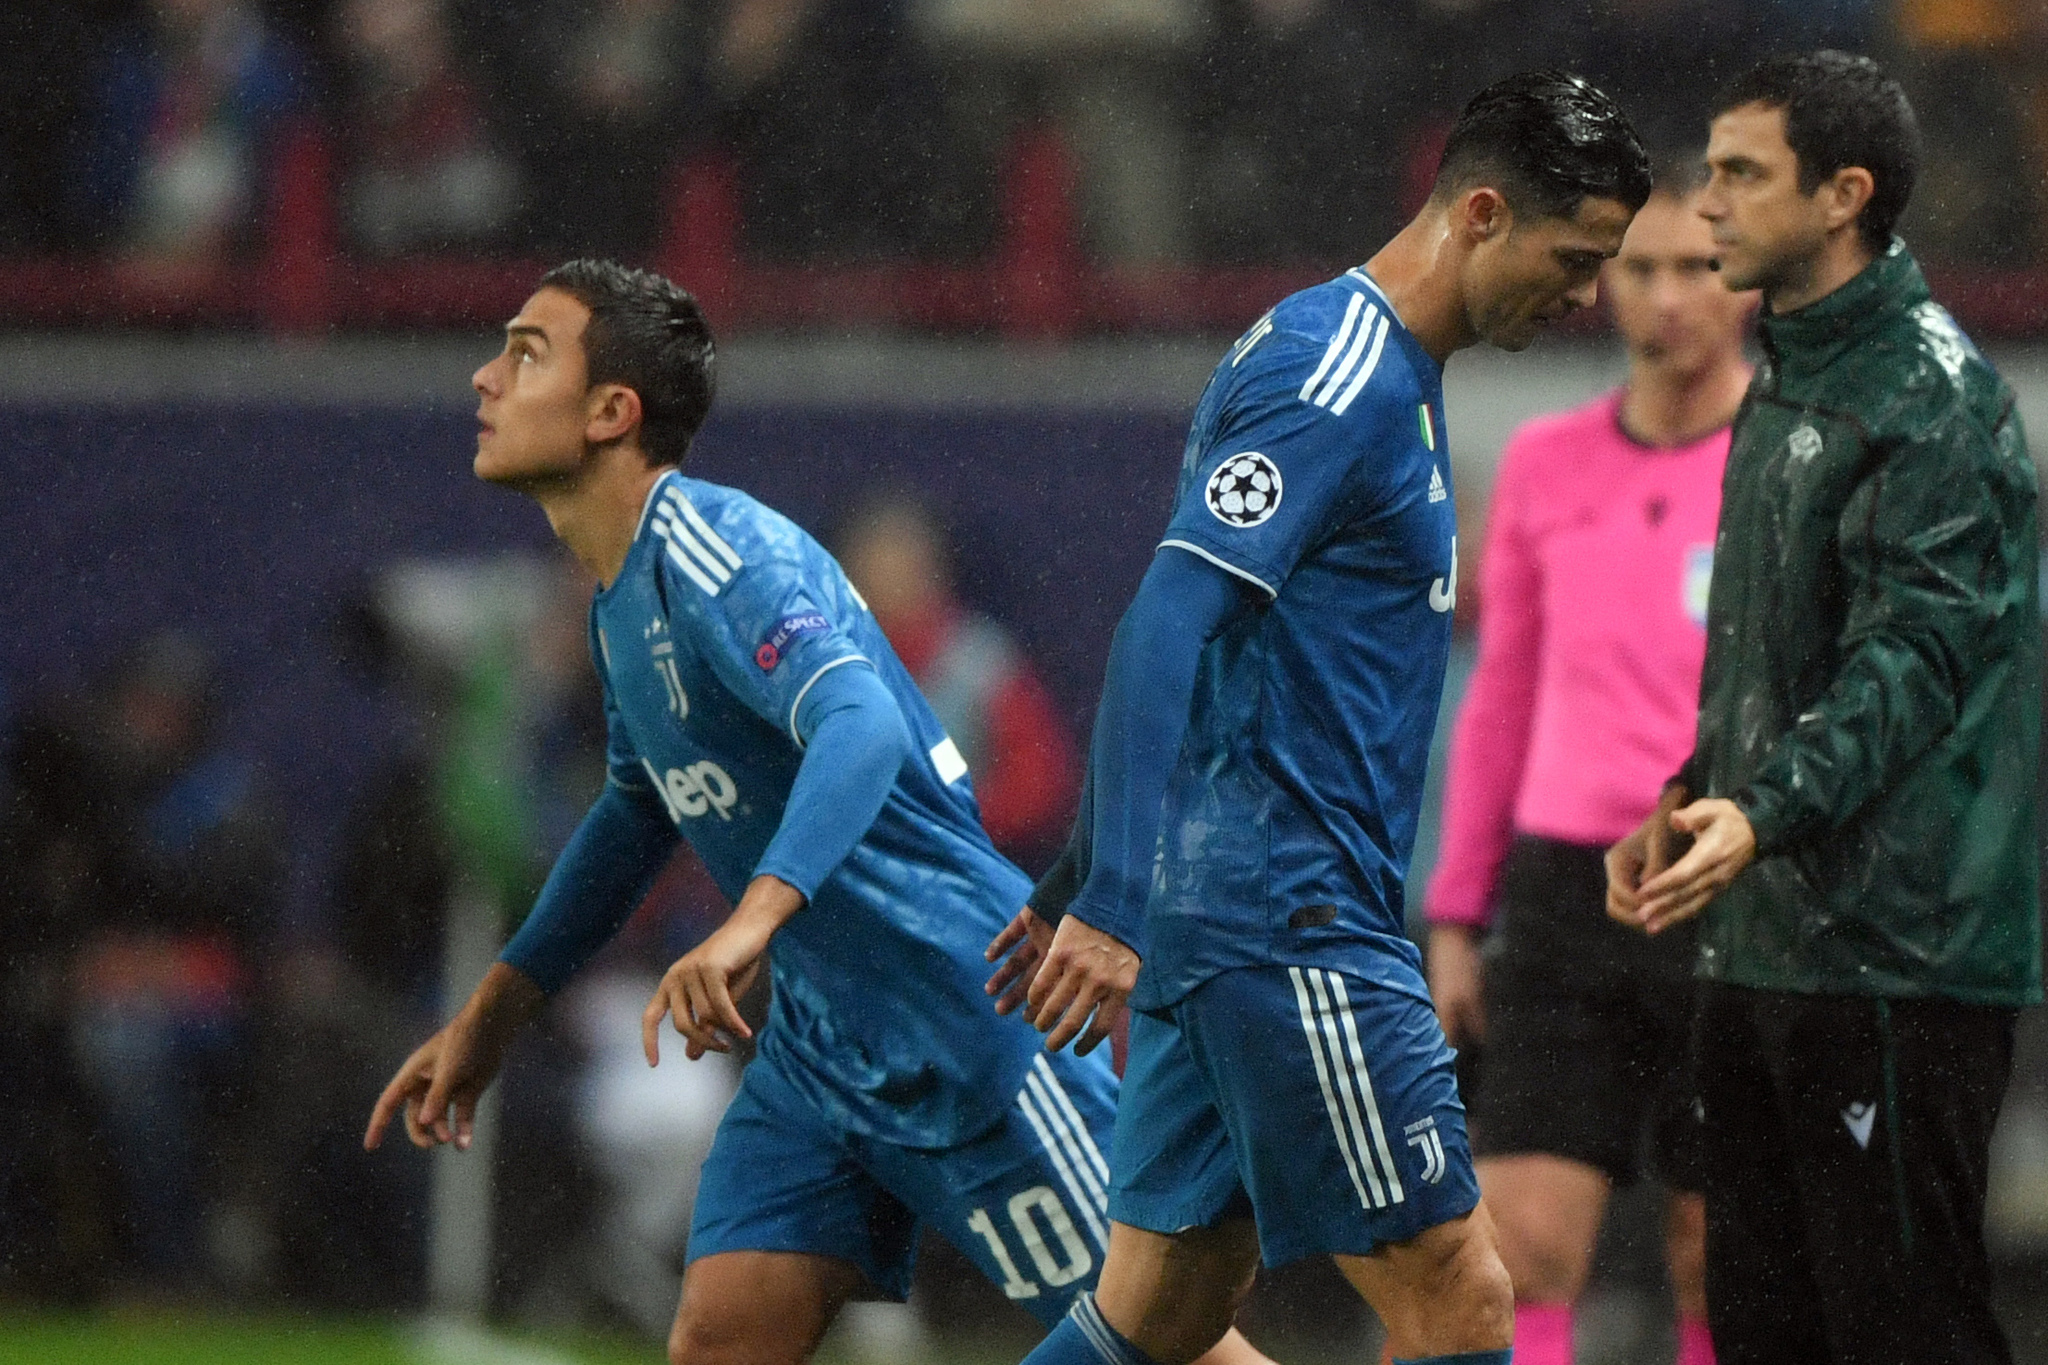 Juventus Portuguese forward <HIT>Cristiano</HIT> Ronaldo is replaced by Juventus Argentine forward Paulo Dybala during the UEFA Champions League group D football match between FC Lokomotiv Moscow and Juventus at Moscows RZD Arena stadium on November 6, 2019. (Photo by Kirill KUDRYAVTSEV / AFP)